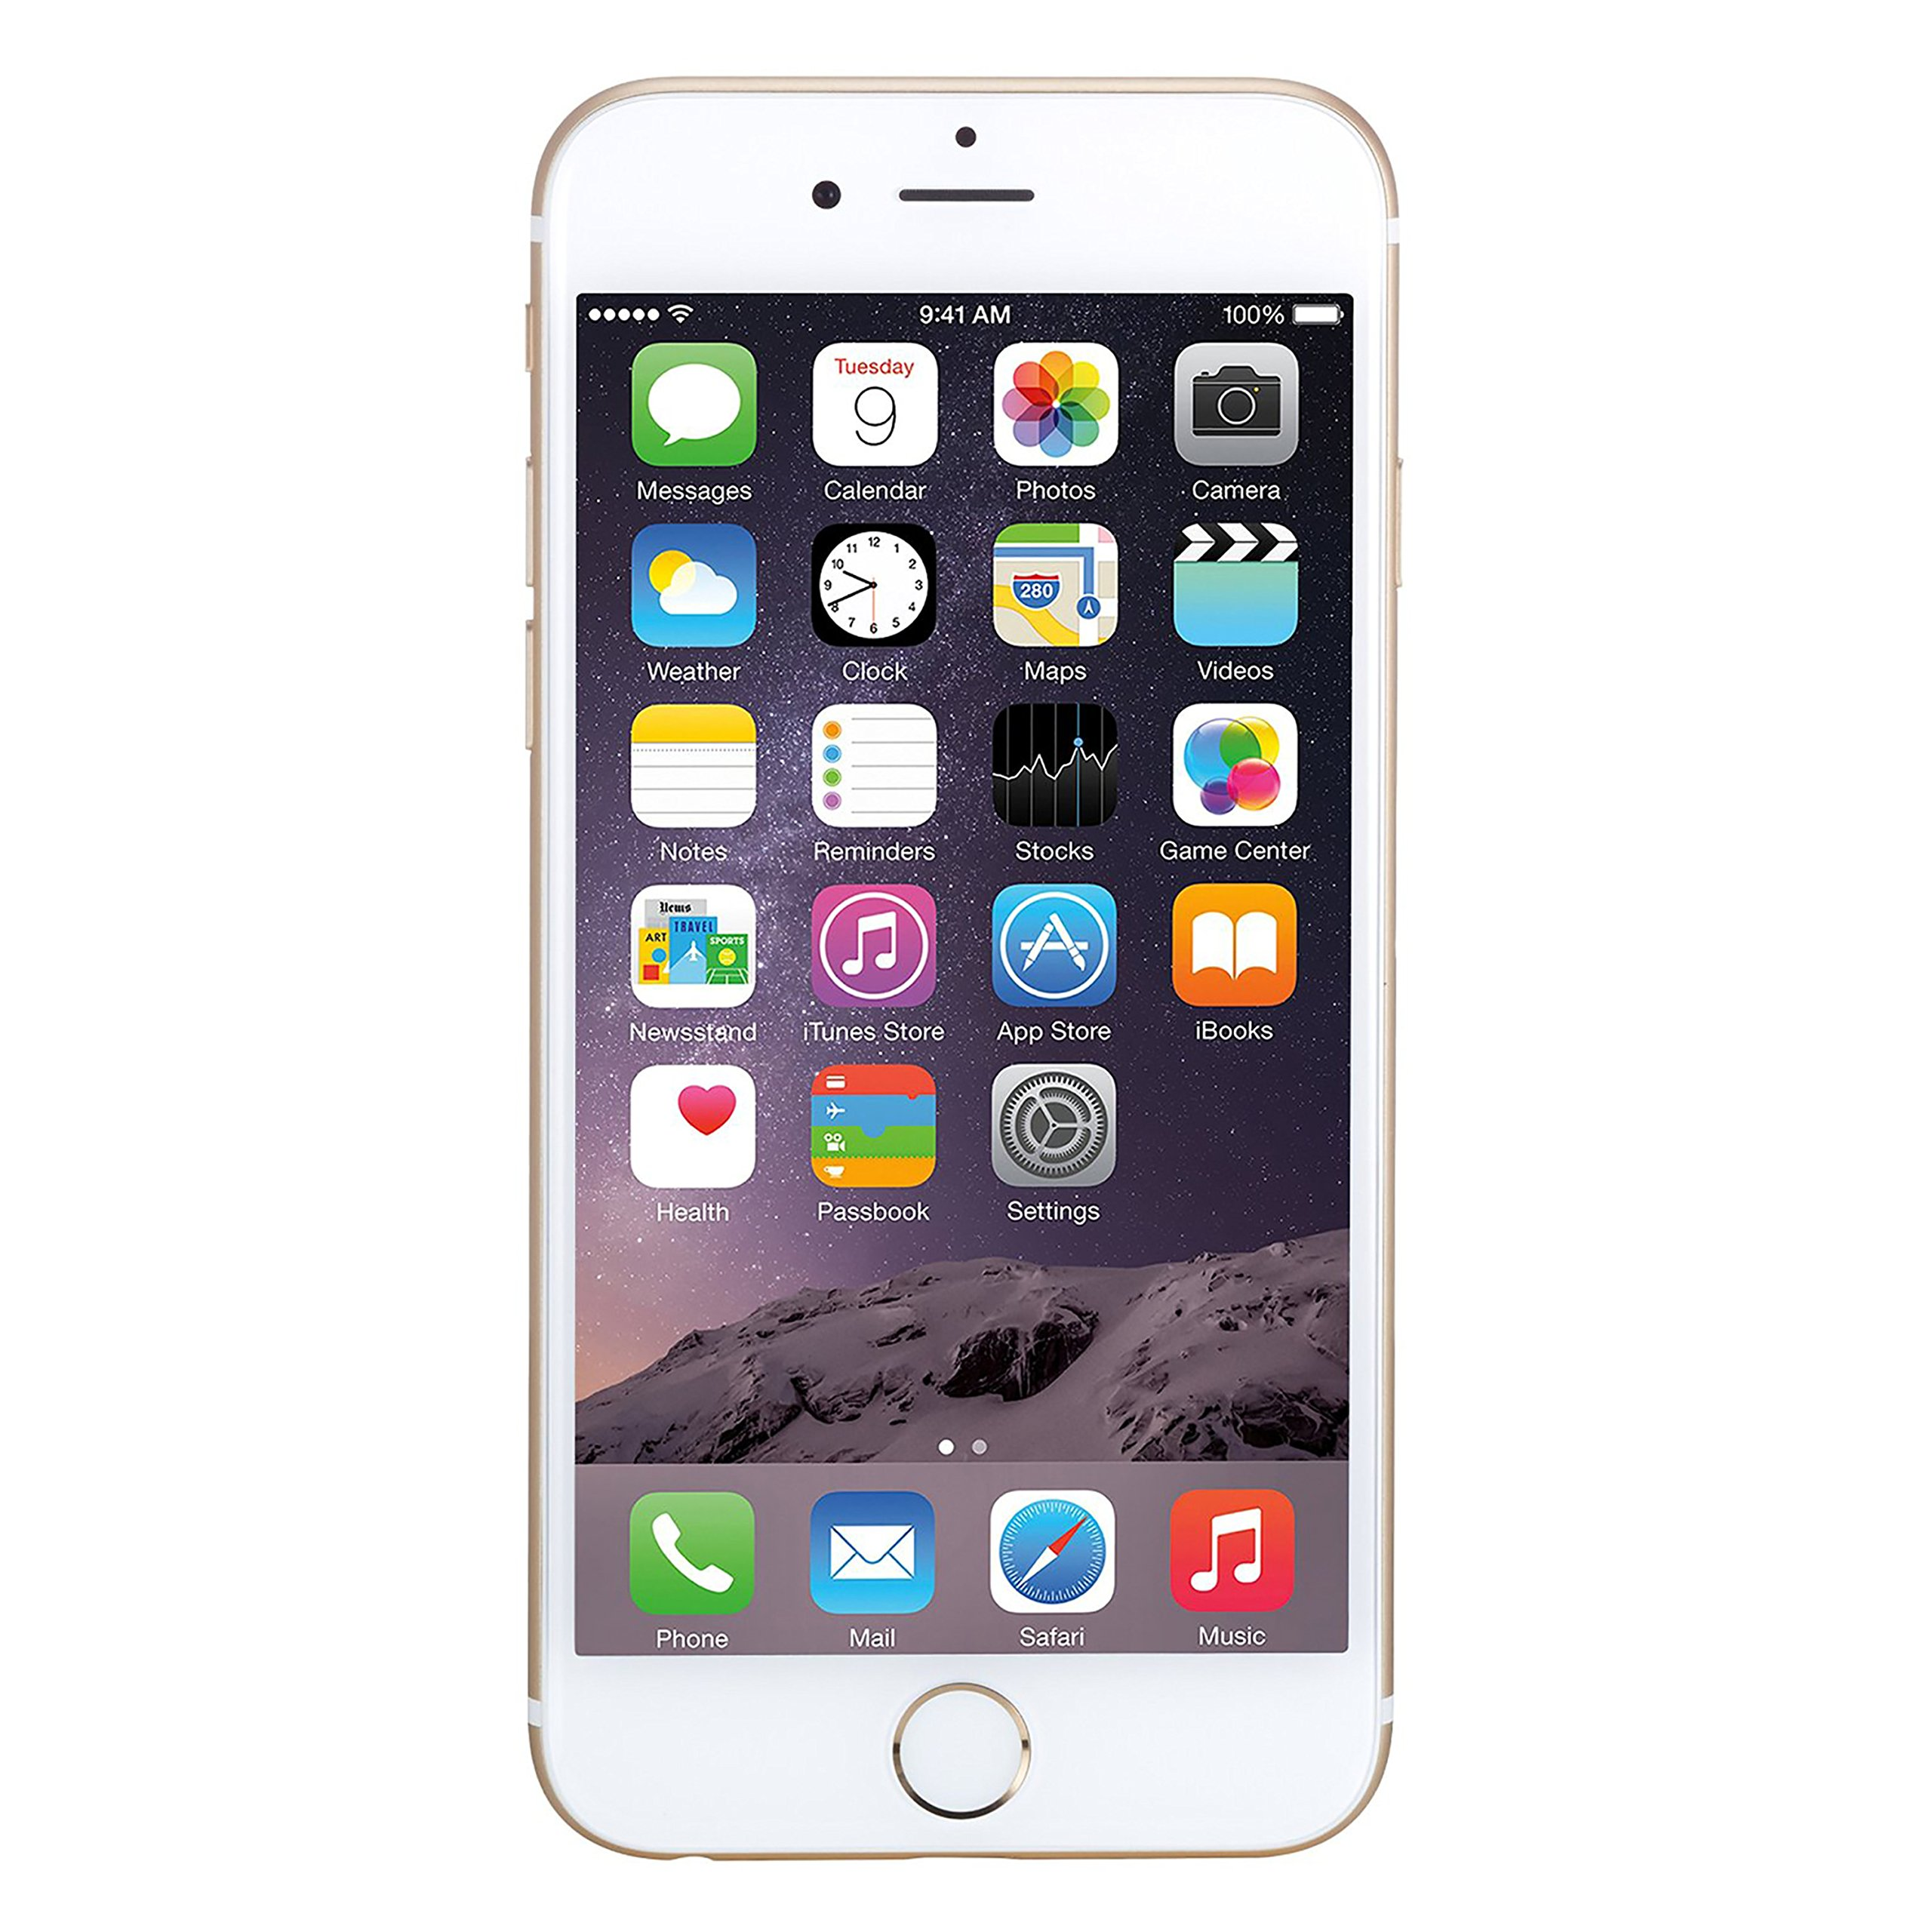 Apple iPhone 6, AT&T, 16GB - Gold (Renewed) by Apple